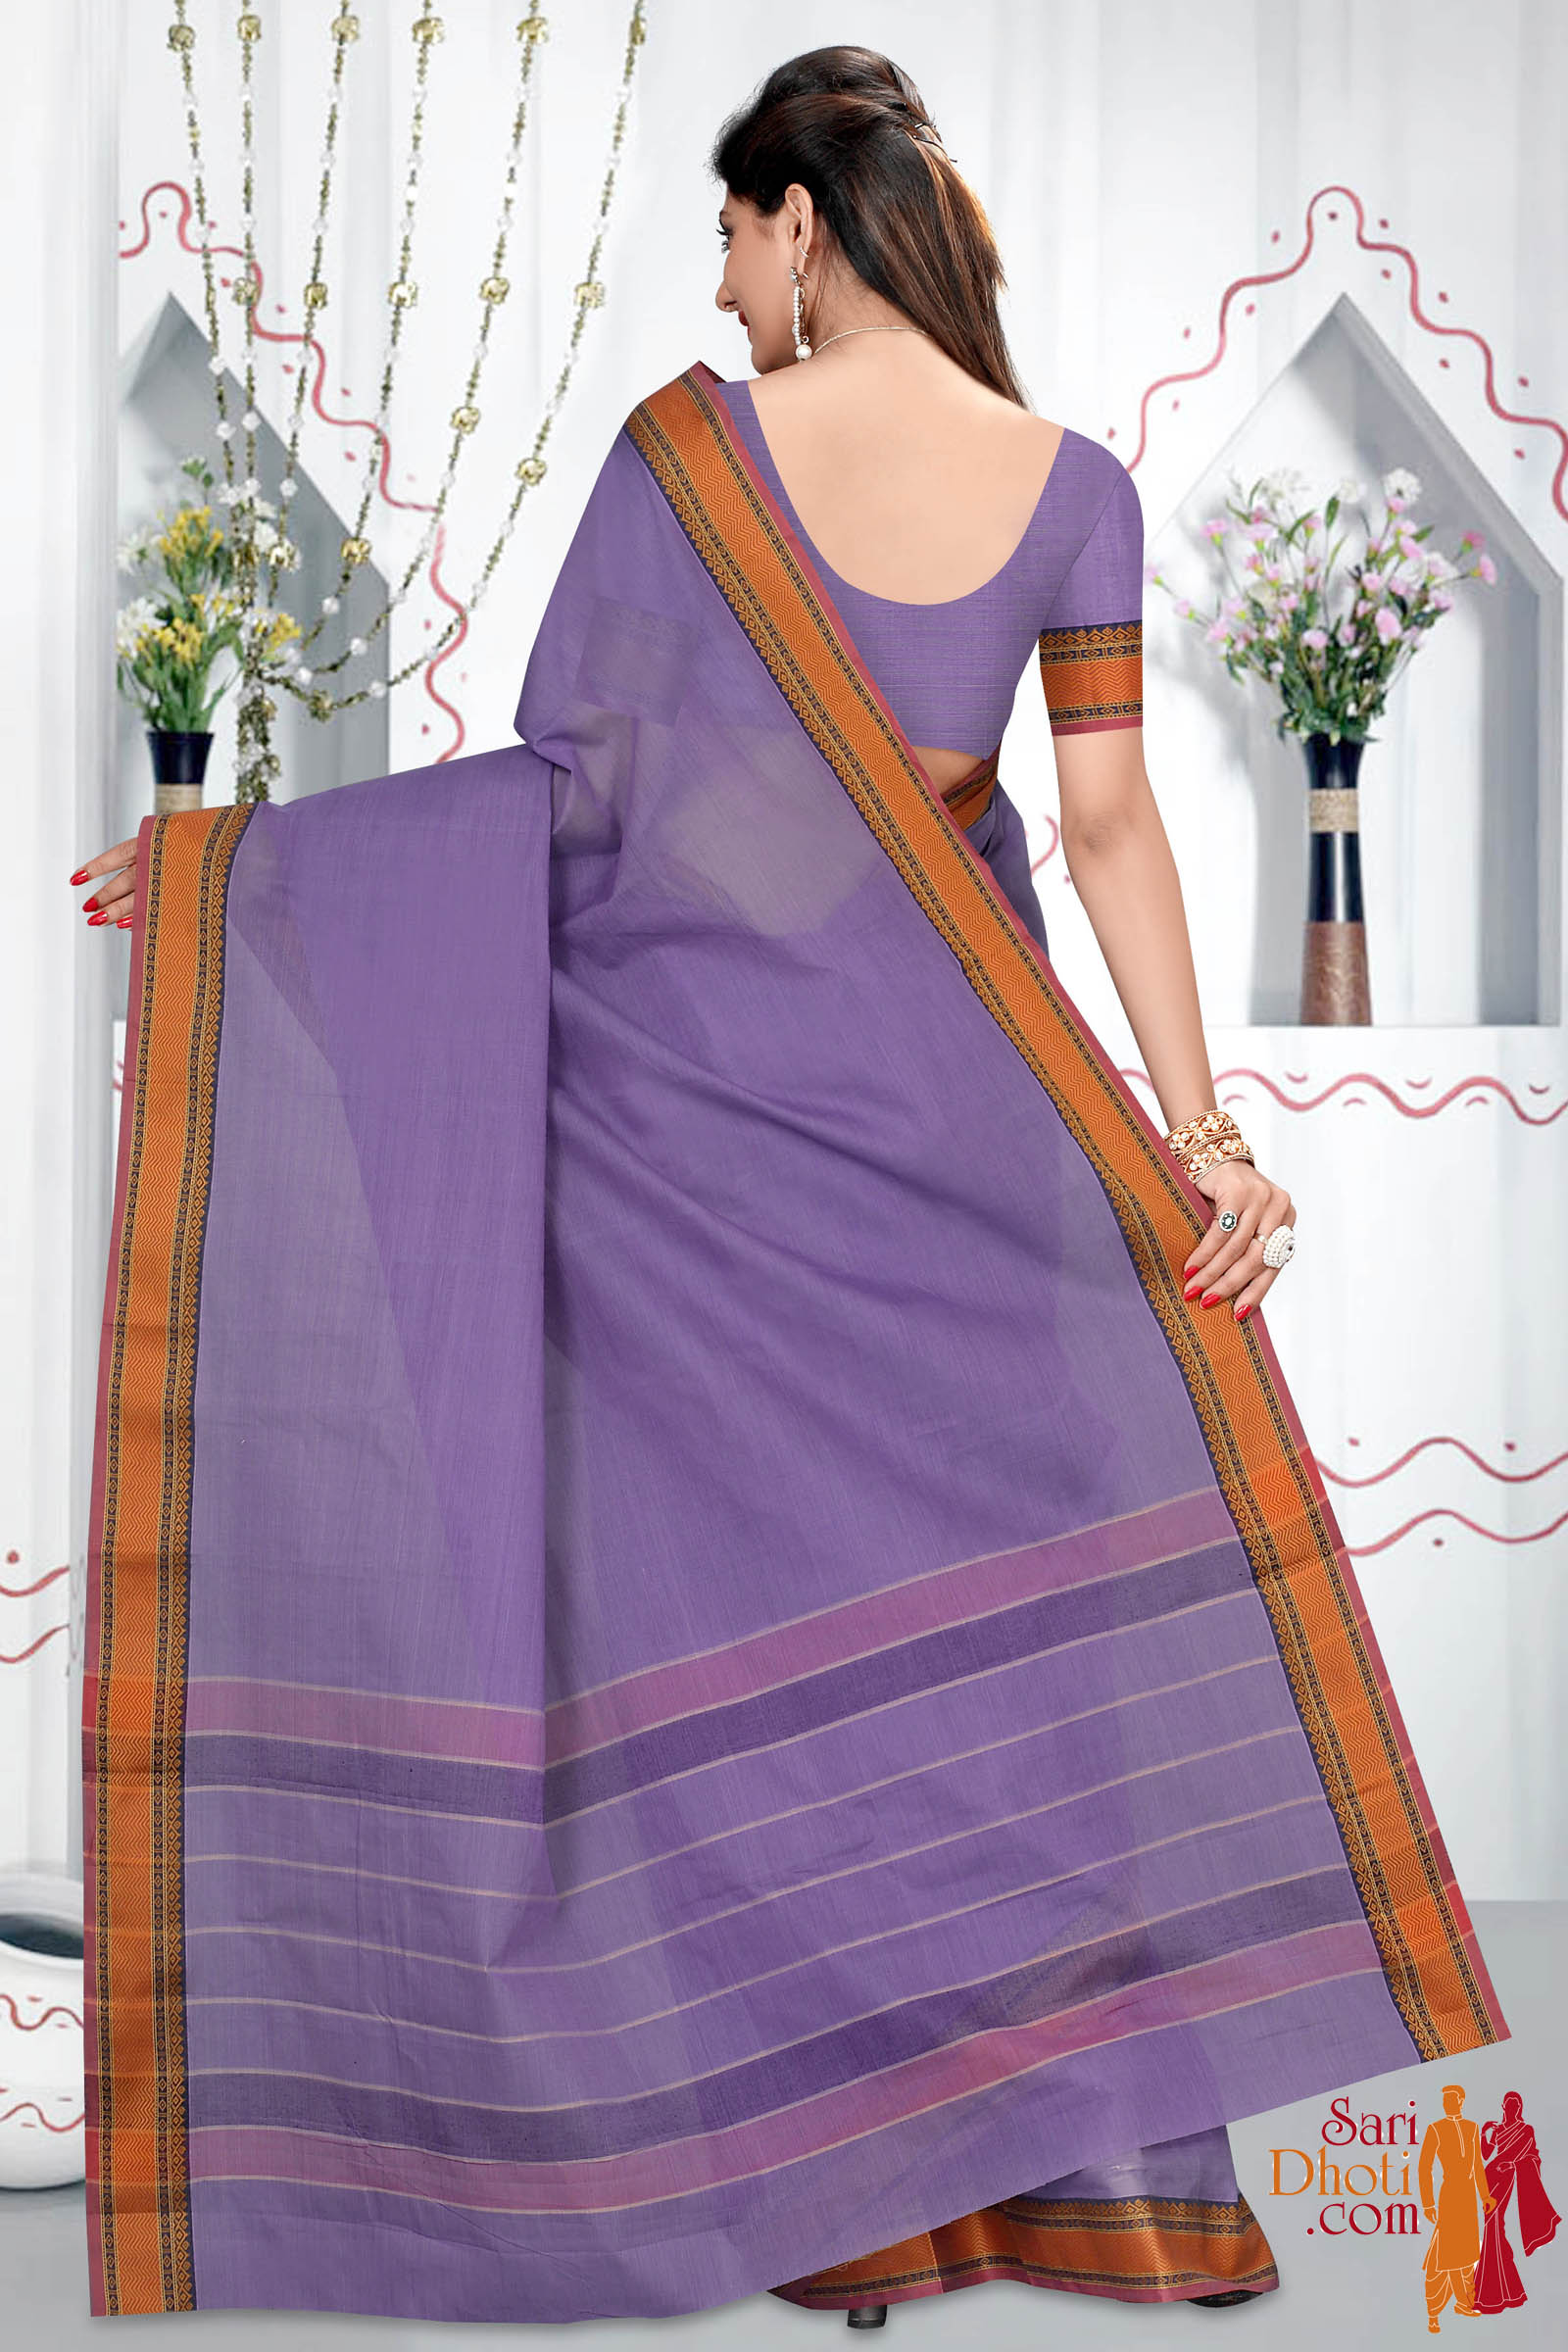 Kanchi Cotton 3747